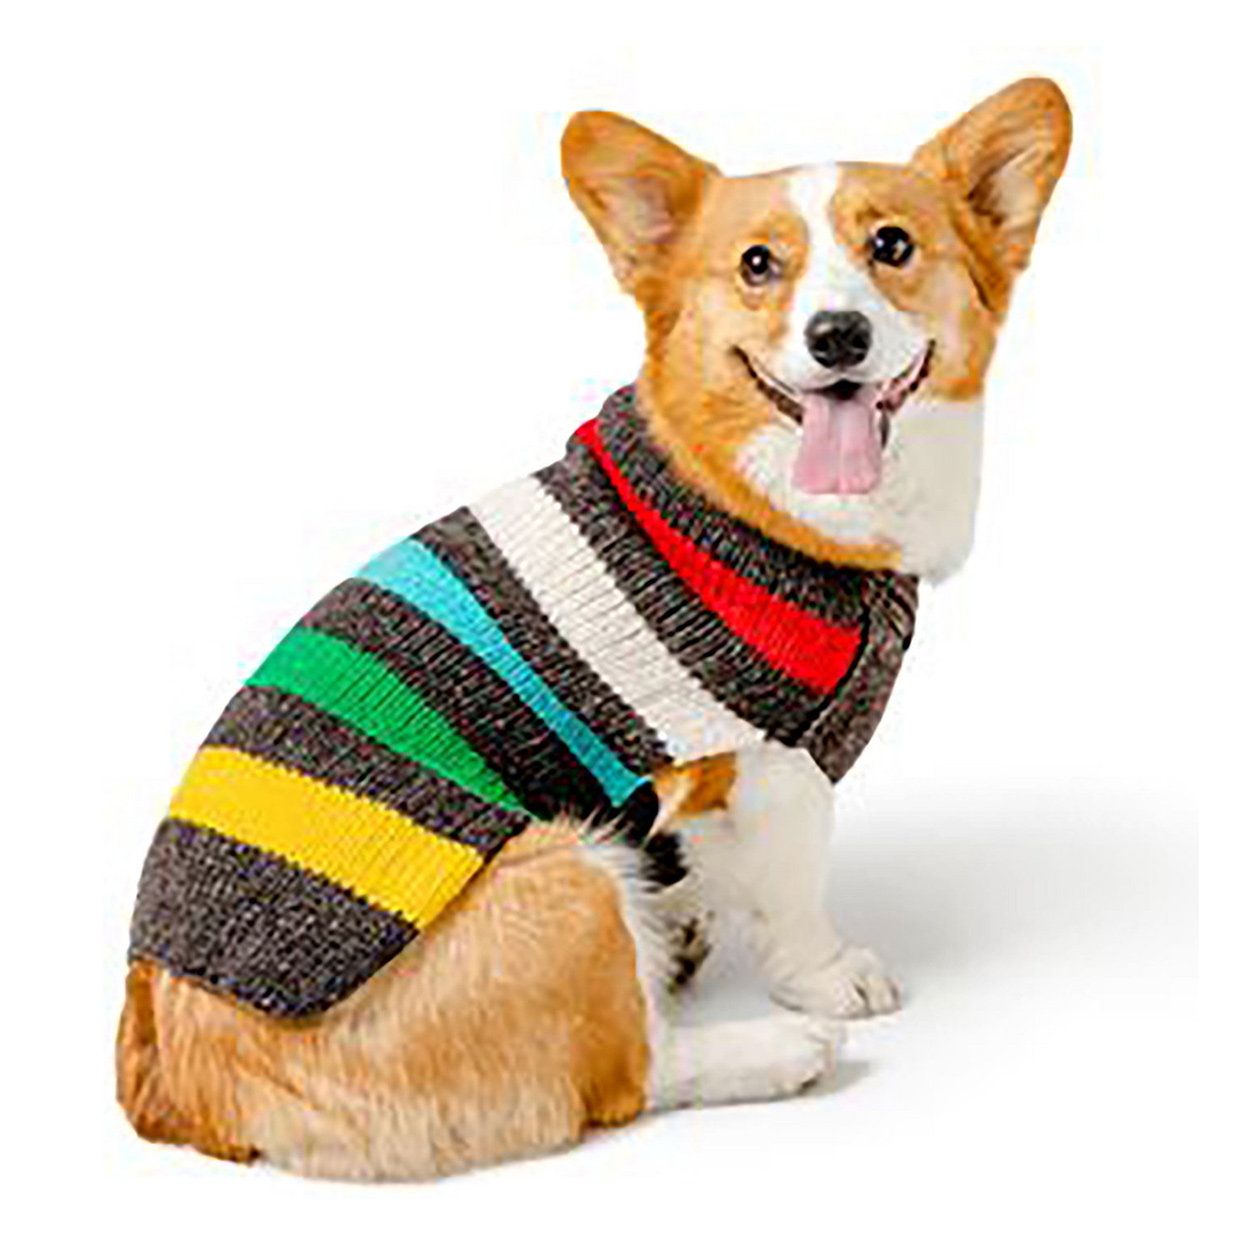 Dog wearing a Chilly Dog Charcoal Striped Wool Sweater on a white background